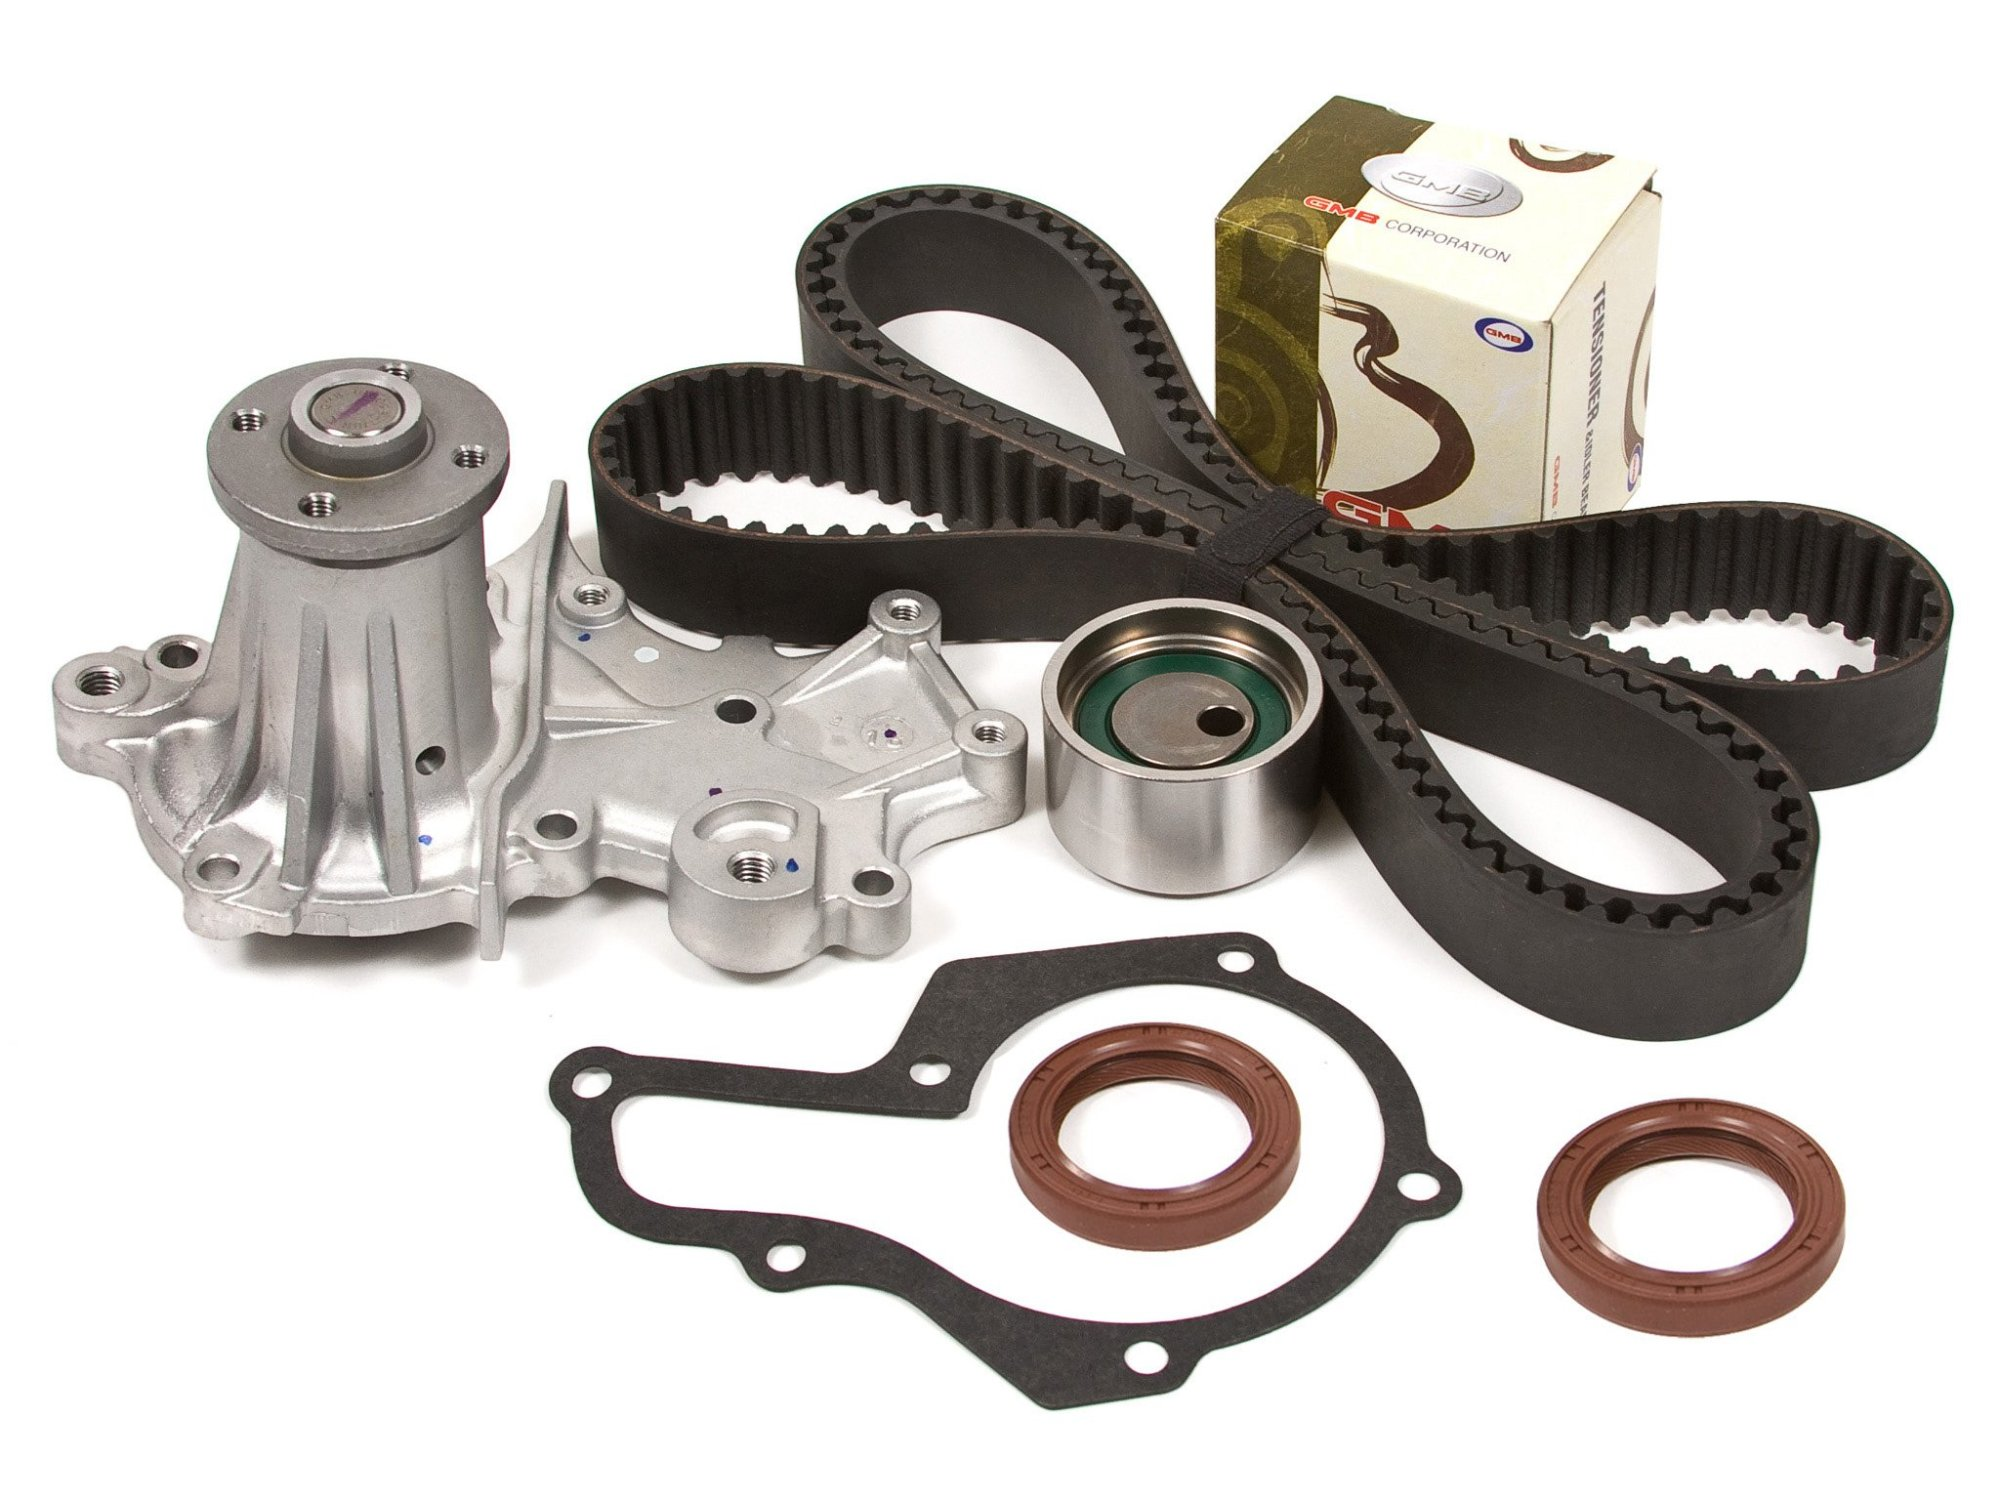 hight resolution of get quotations evergreen tbk212wpt suzuki chevrolet geo 1 6l g16b sohc timing belt kit water pump